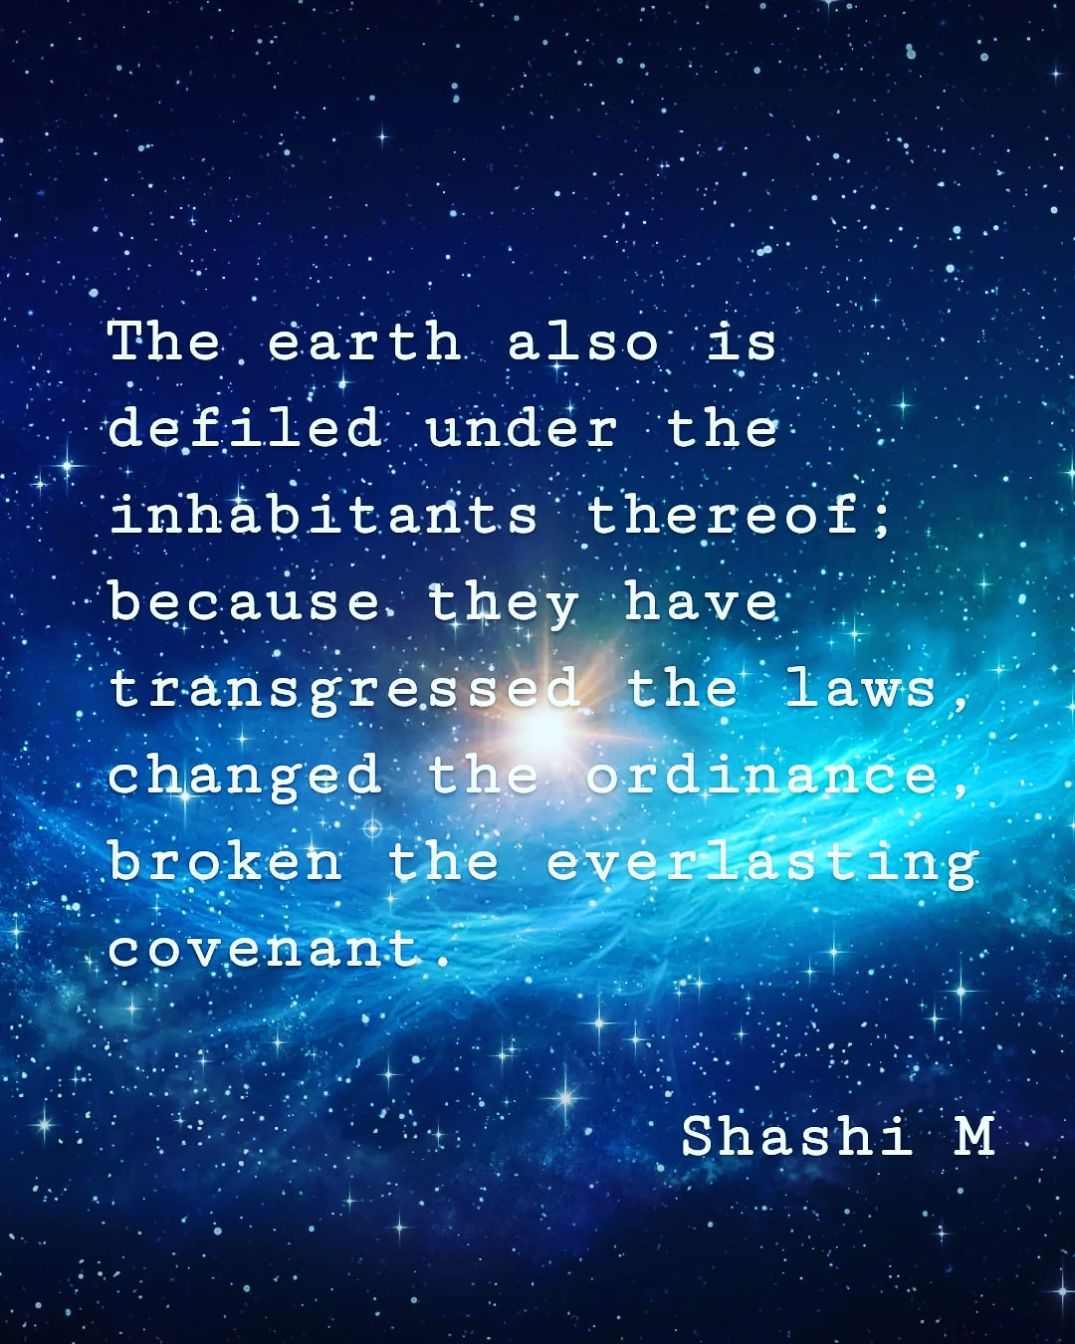 ℹ️సమాచారం - The earth also is . defiled under the inhabitants thereof ; because they have transgressed the laws , changed the ordinance , broken the everlasting covenant . Shashi M - ShareChat